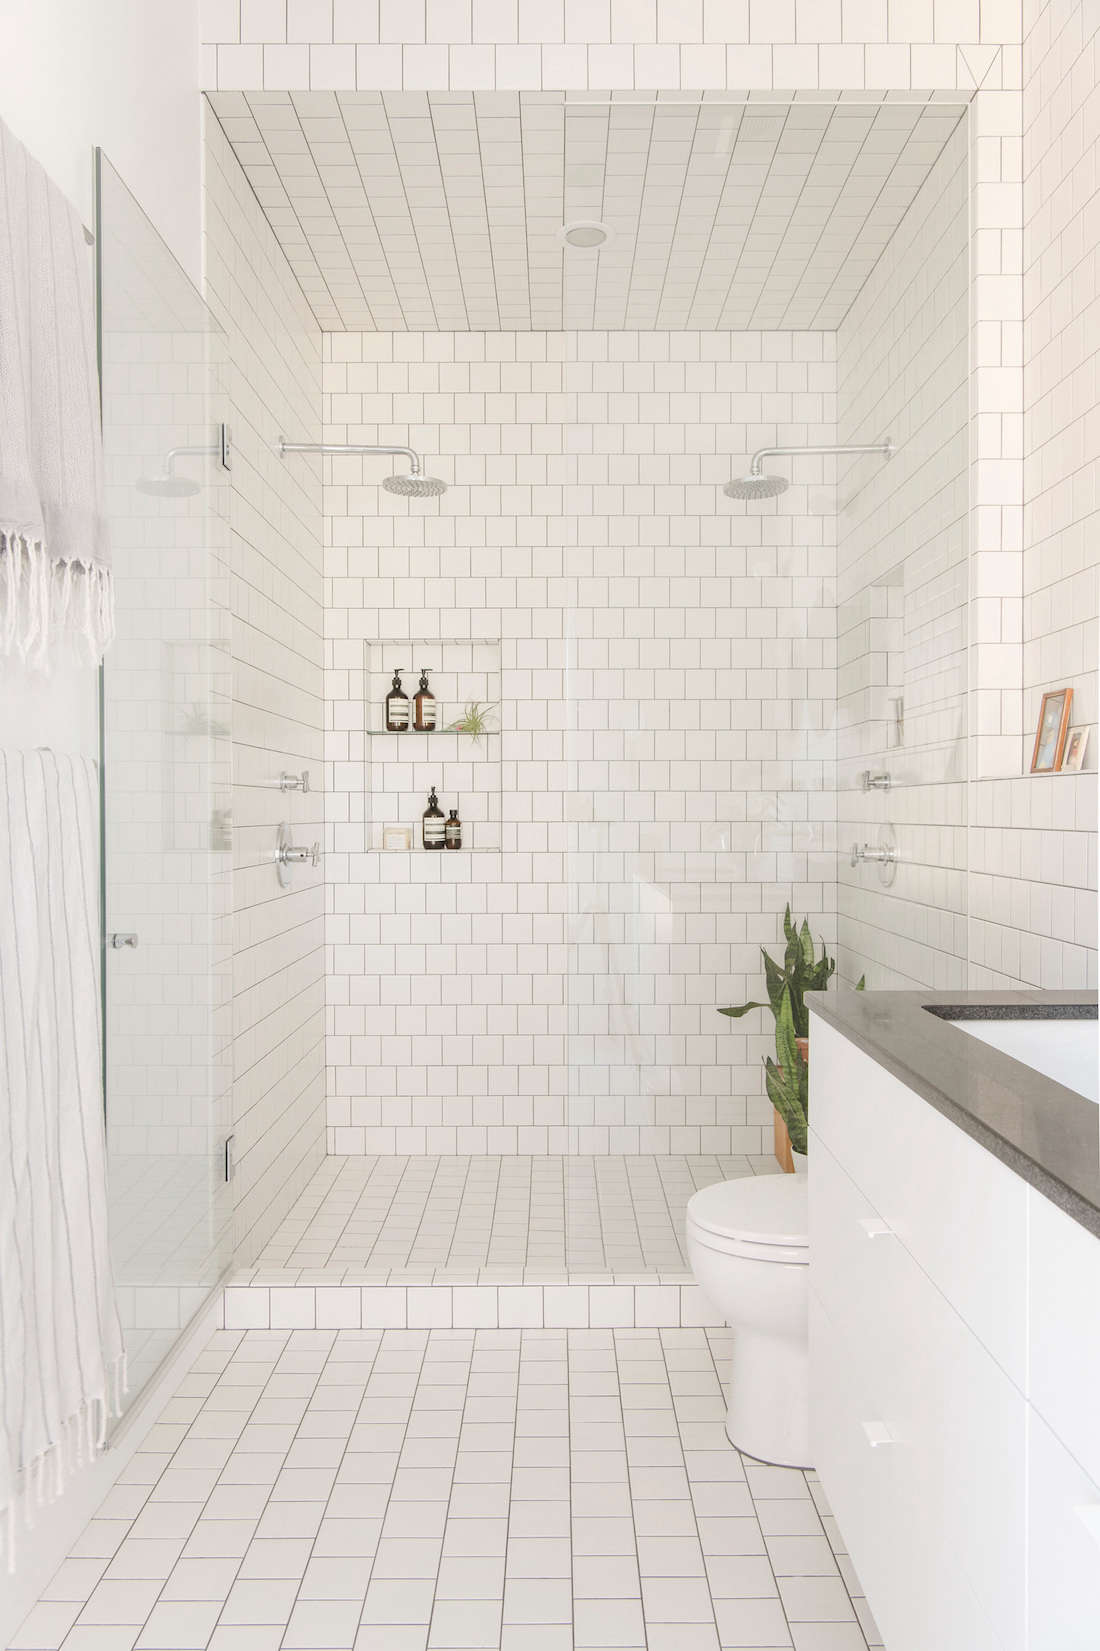 Bathrooms With Surface Mounted Medicine Cabinets